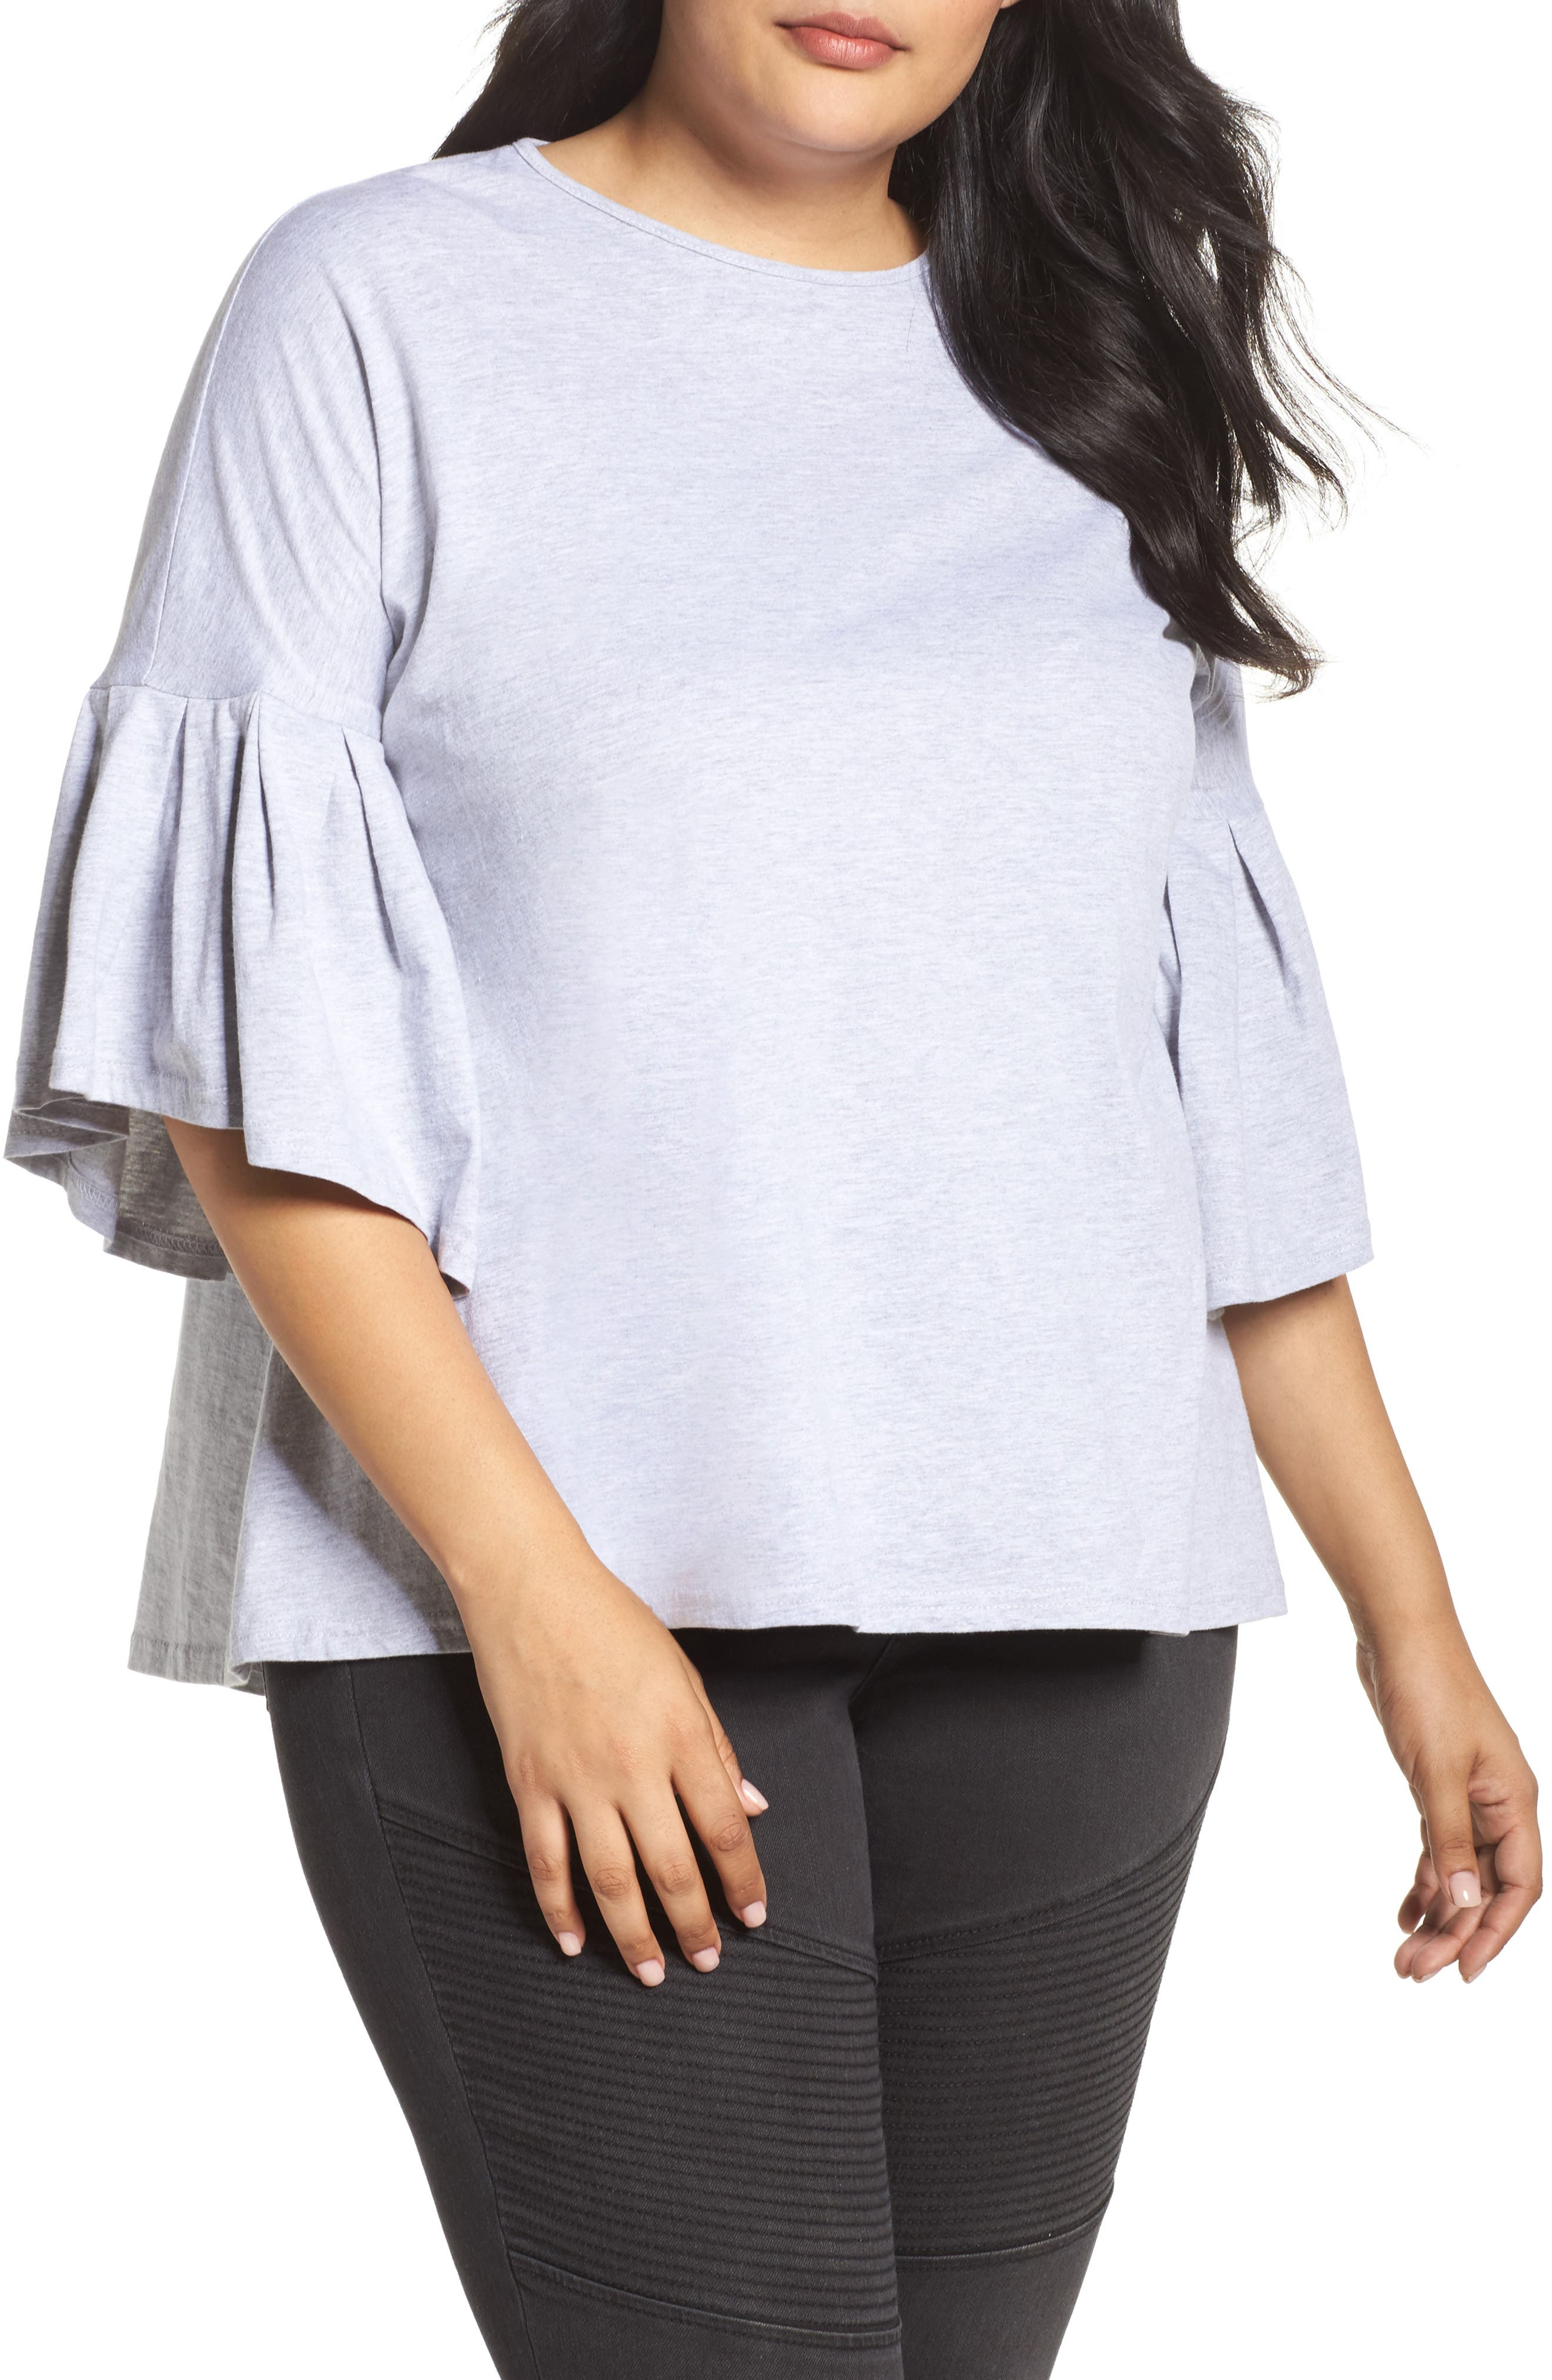 Alternate Image 1 Selected - LOST INK Bell Sleeve Cotton Blouse (Plus Size)